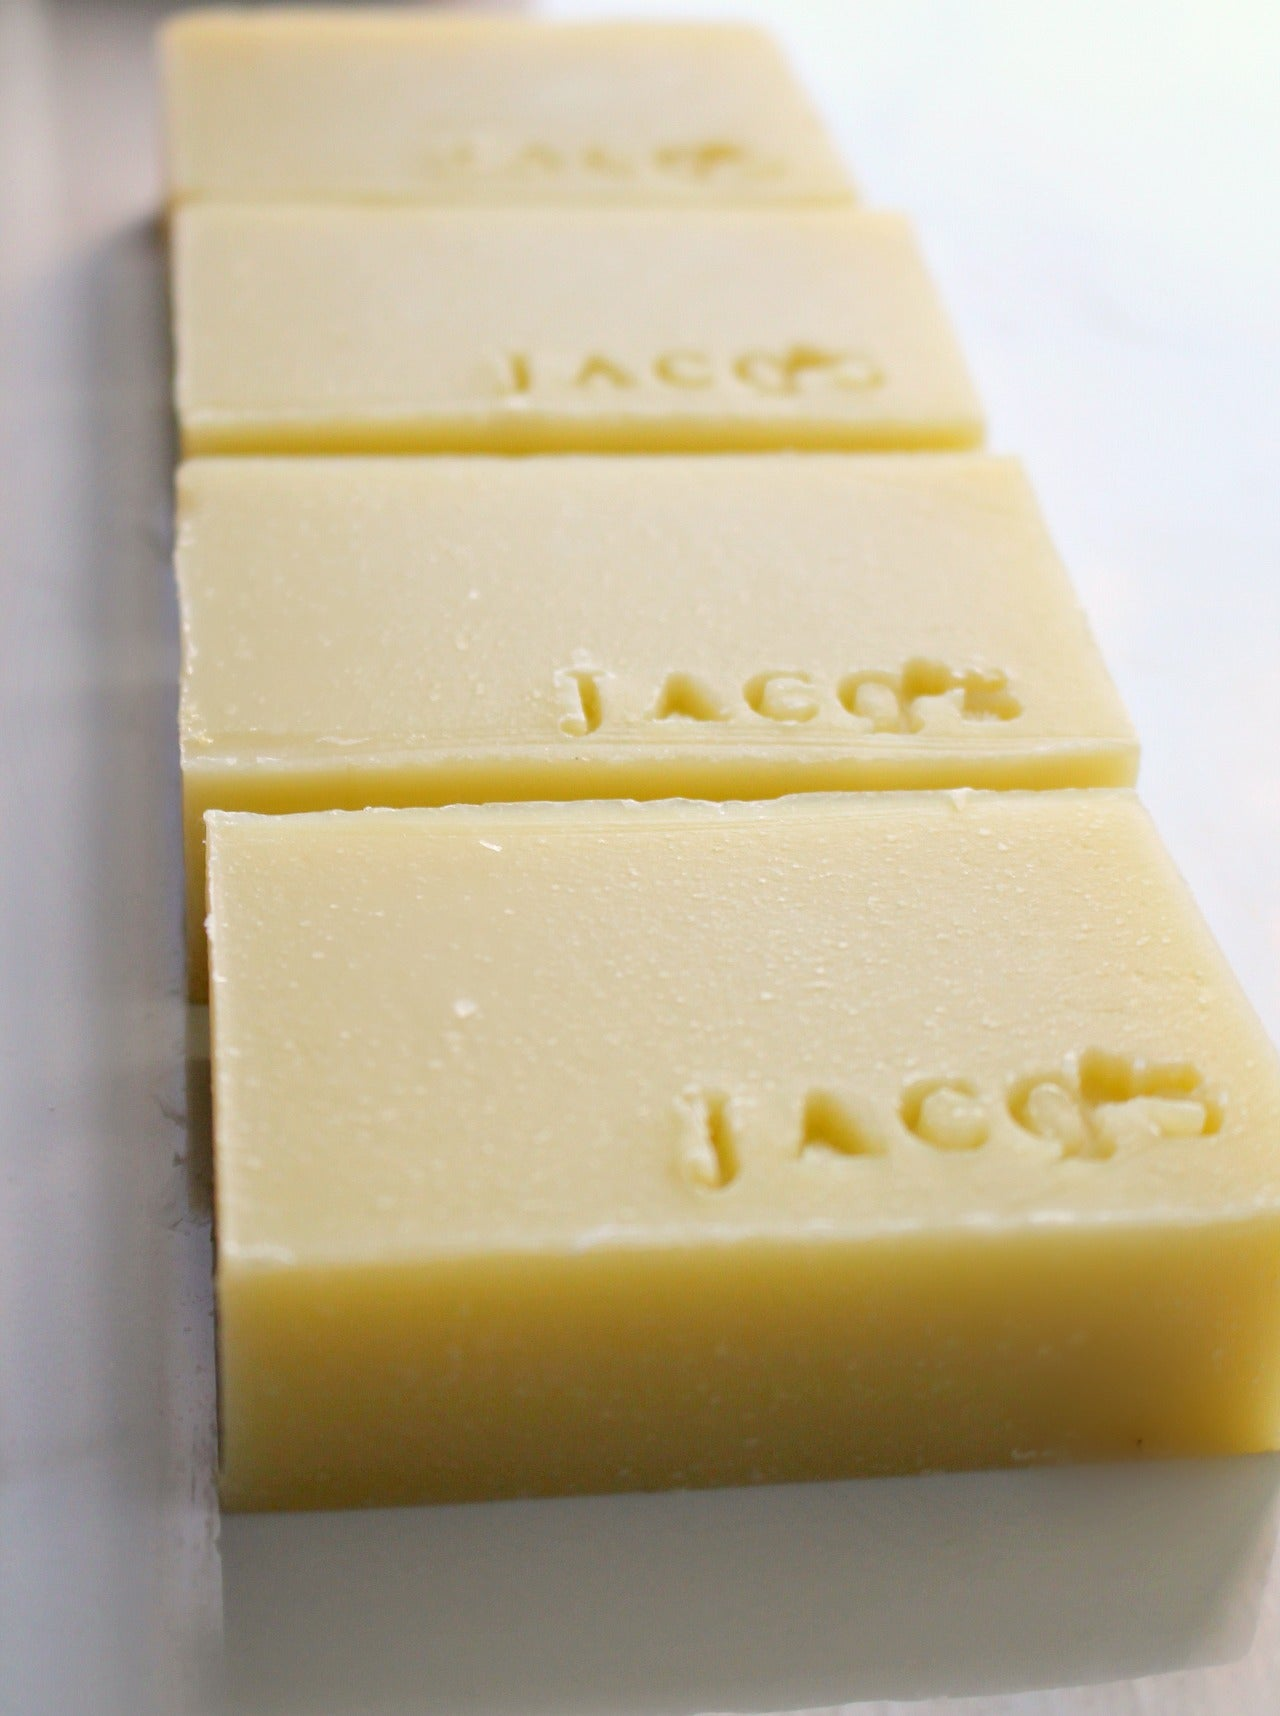 JACQ's Yucca & Lavender Cleansing bar in ar ow